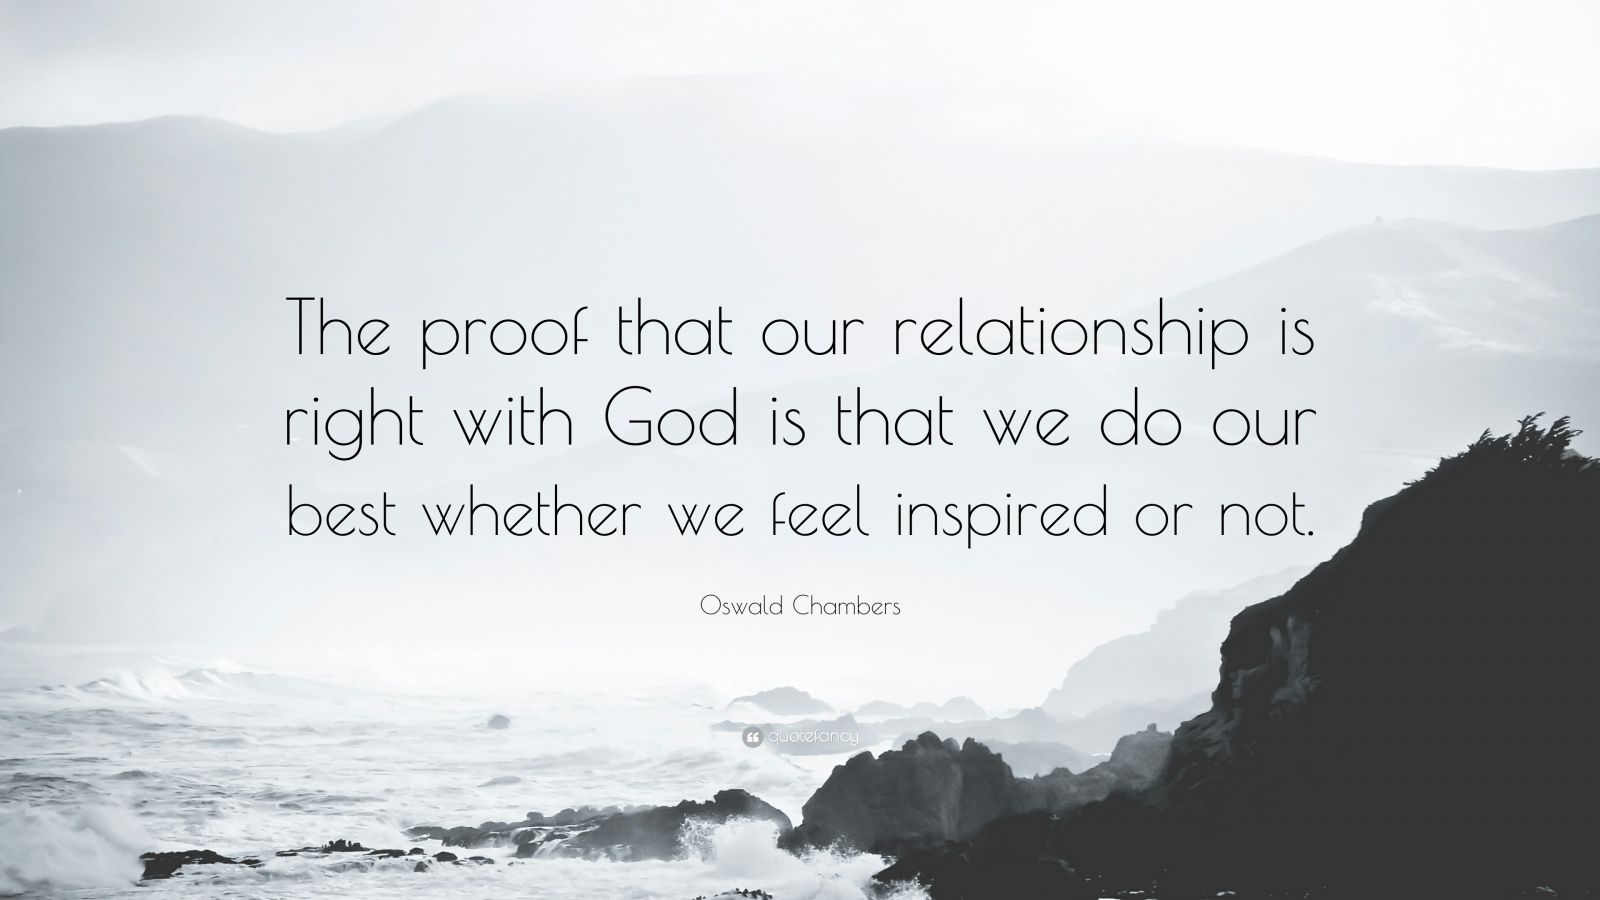 """Oswald Chambers Quote: """"The proof that our relationship is right with God is that we do our best whether we feel inspired or not."""""""